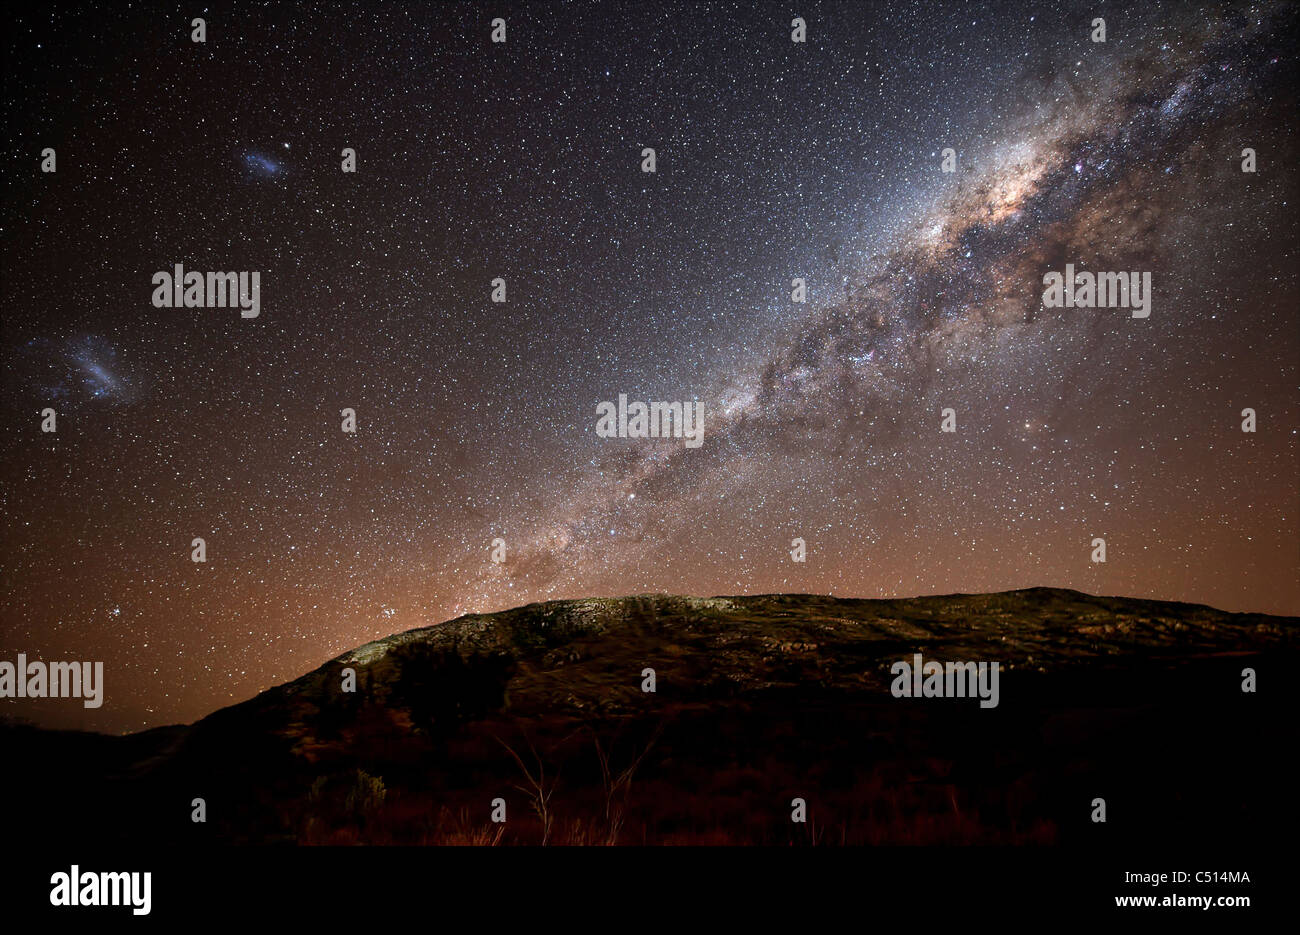 The Milky Way and its satellite galaxies the Magellanic Clouds rising above the hills of Azul, Argentina. - Stock Image